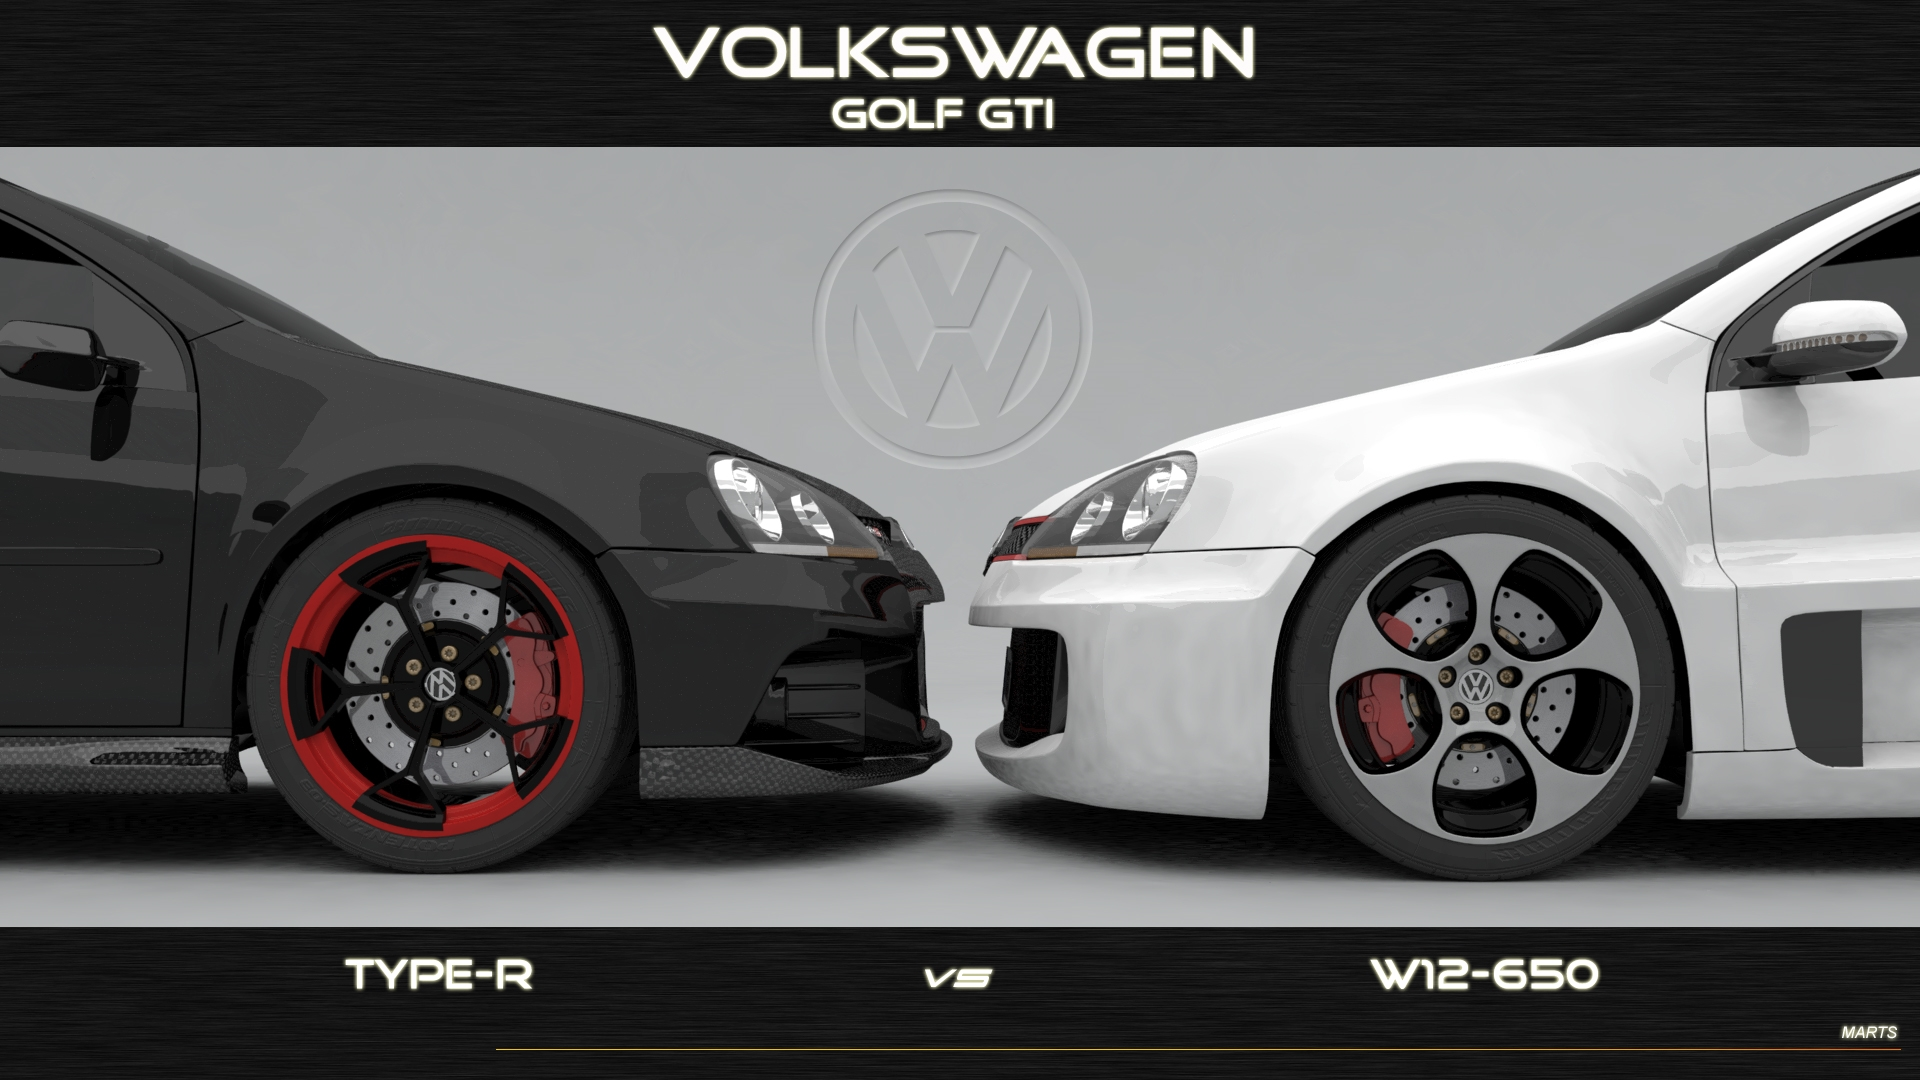 Vw Of America >> Volkswagen Golf Gti Download Wallpaper